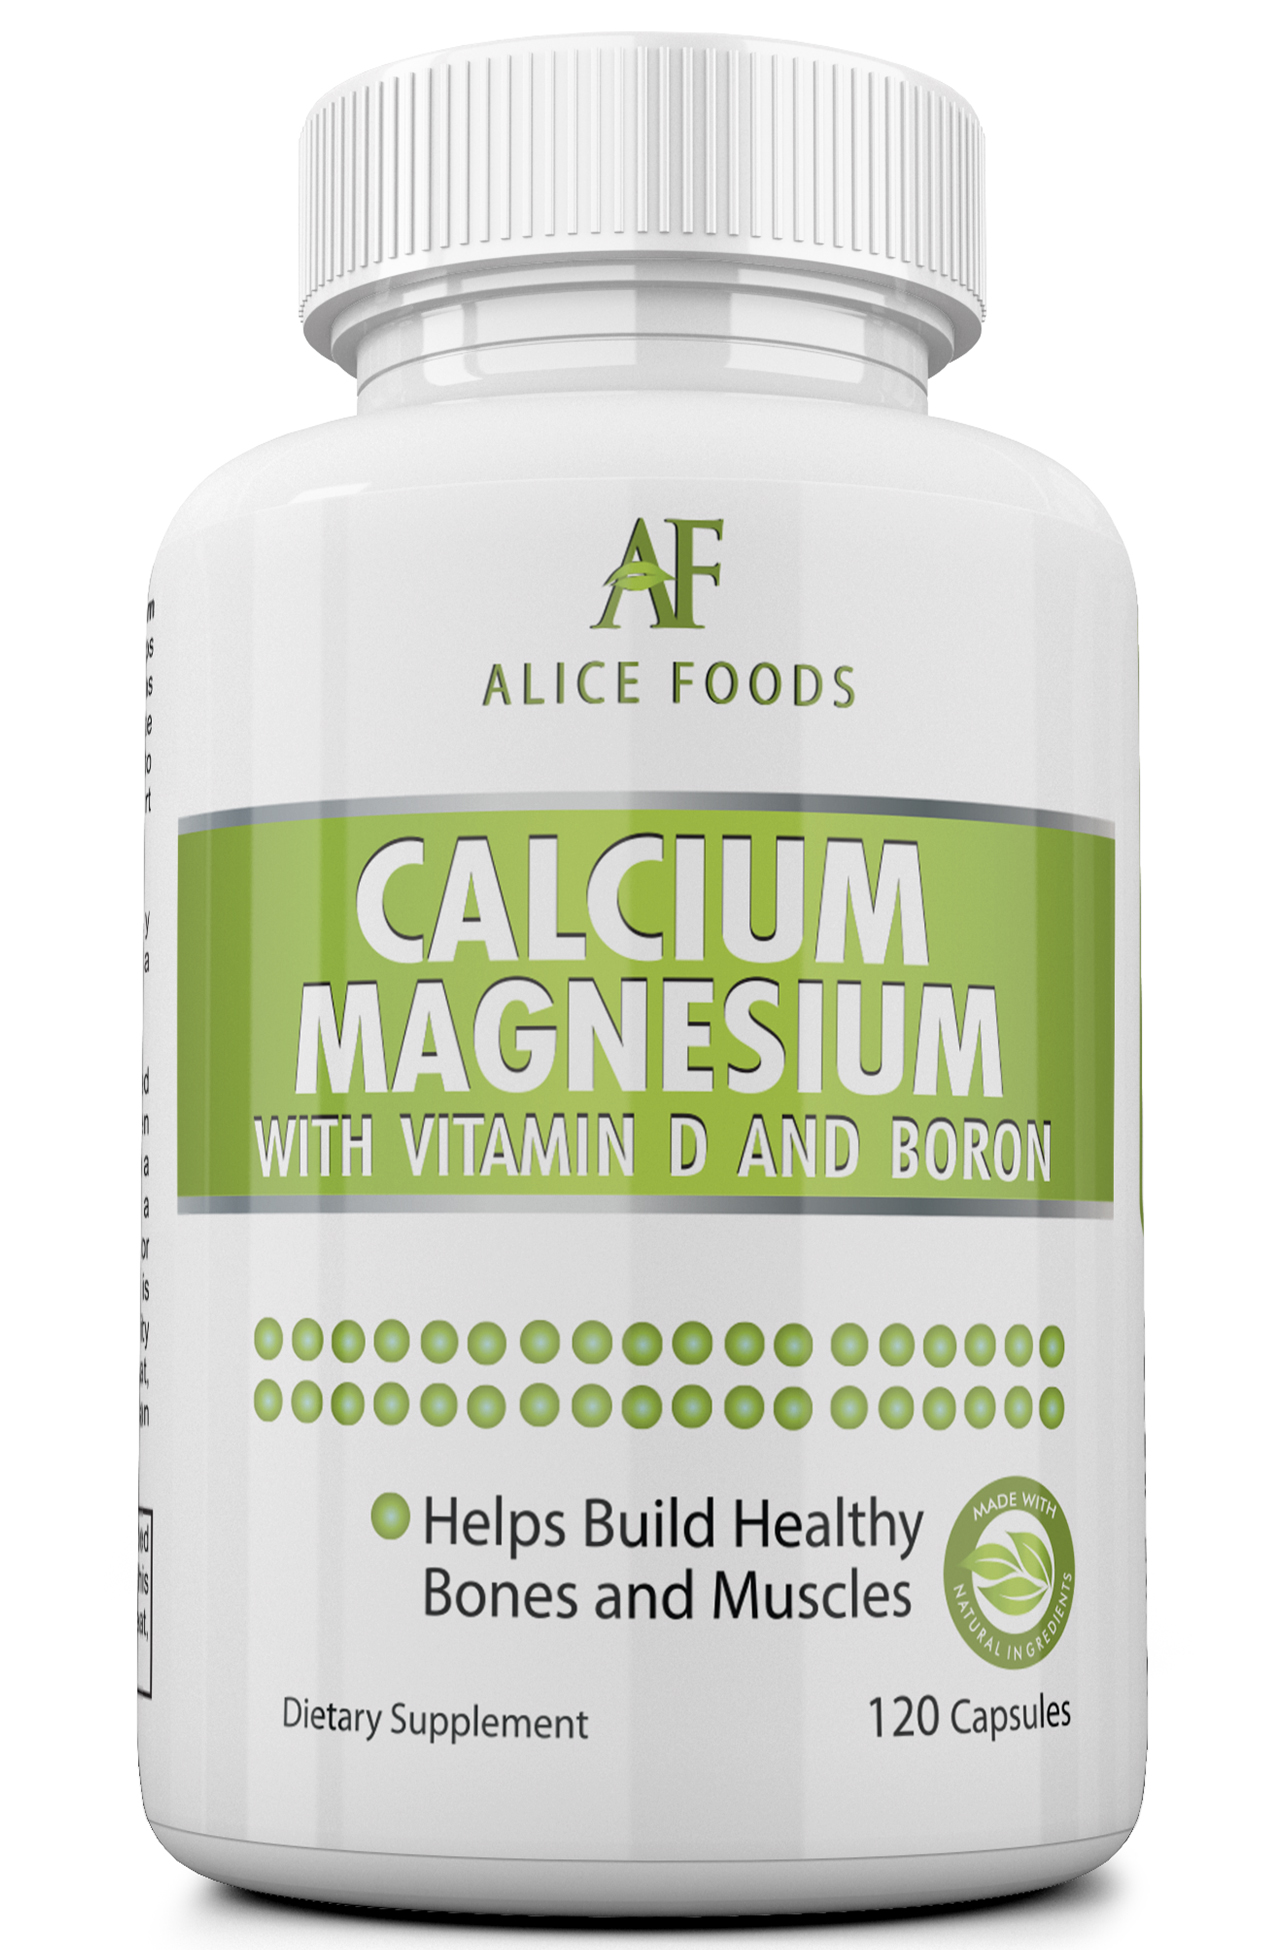 calcium magnesium vitamin d boron complex 30 days supply alice foods. Black Bedroom Furniture Sets. Home Design Ideas